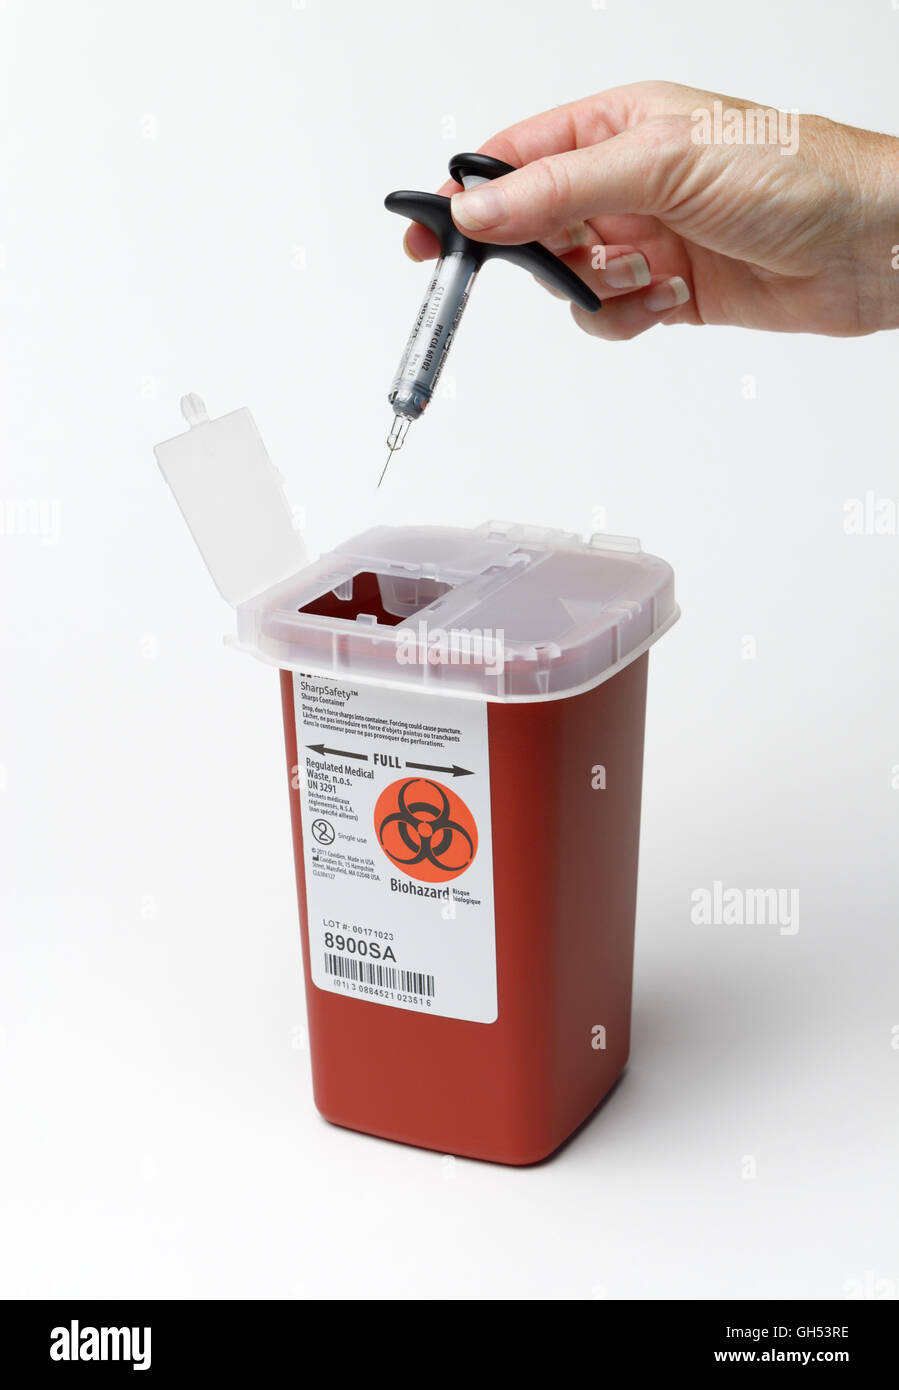 Disposing of a syringe in a sharps container for medical waste after an injection of medicine - Stock Image